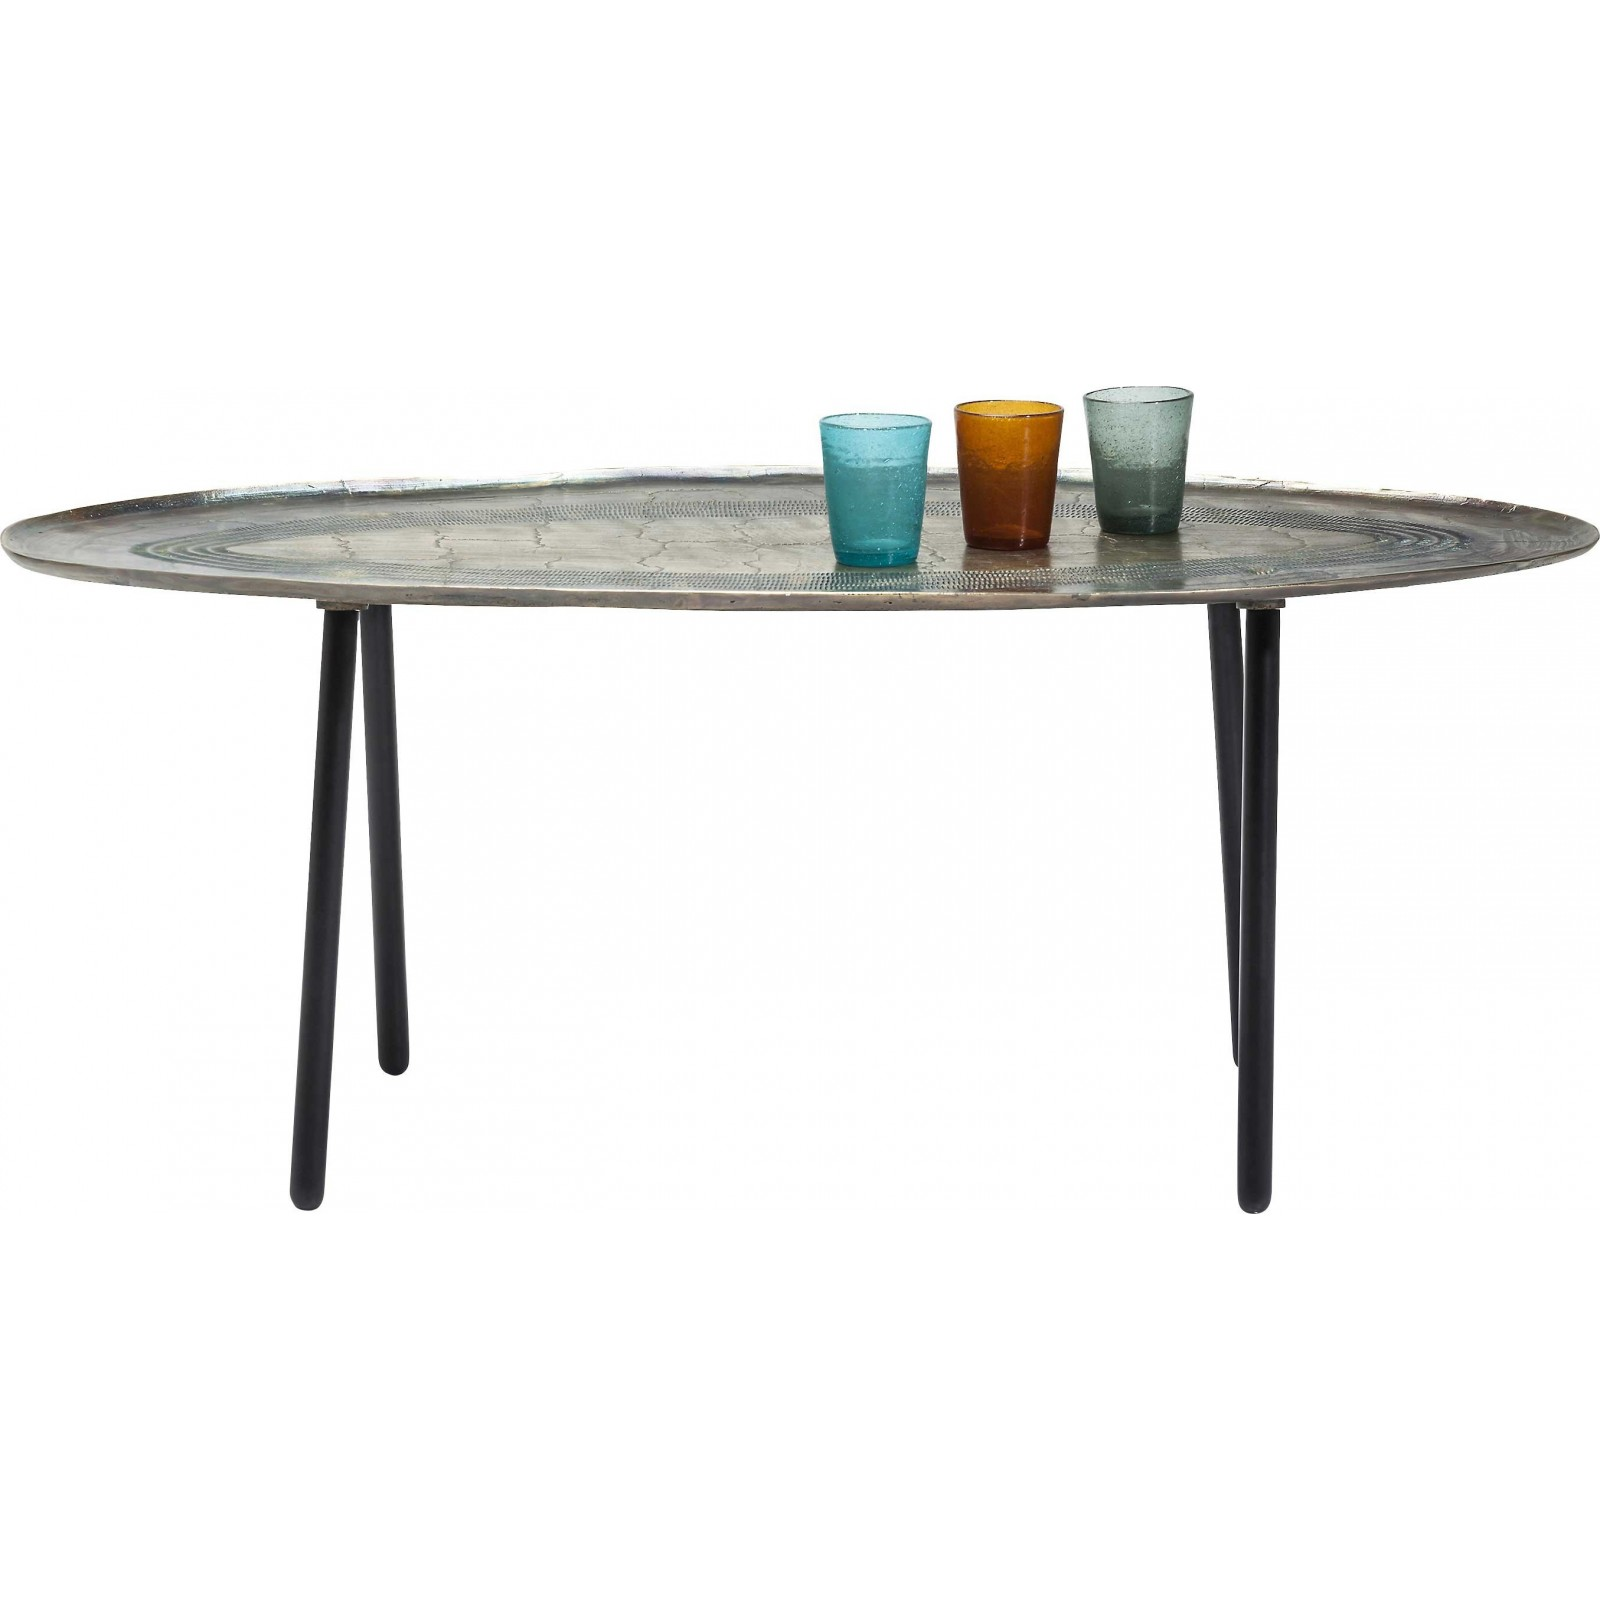 Table basse ovale el camino kare design - Table basse ovale design ...